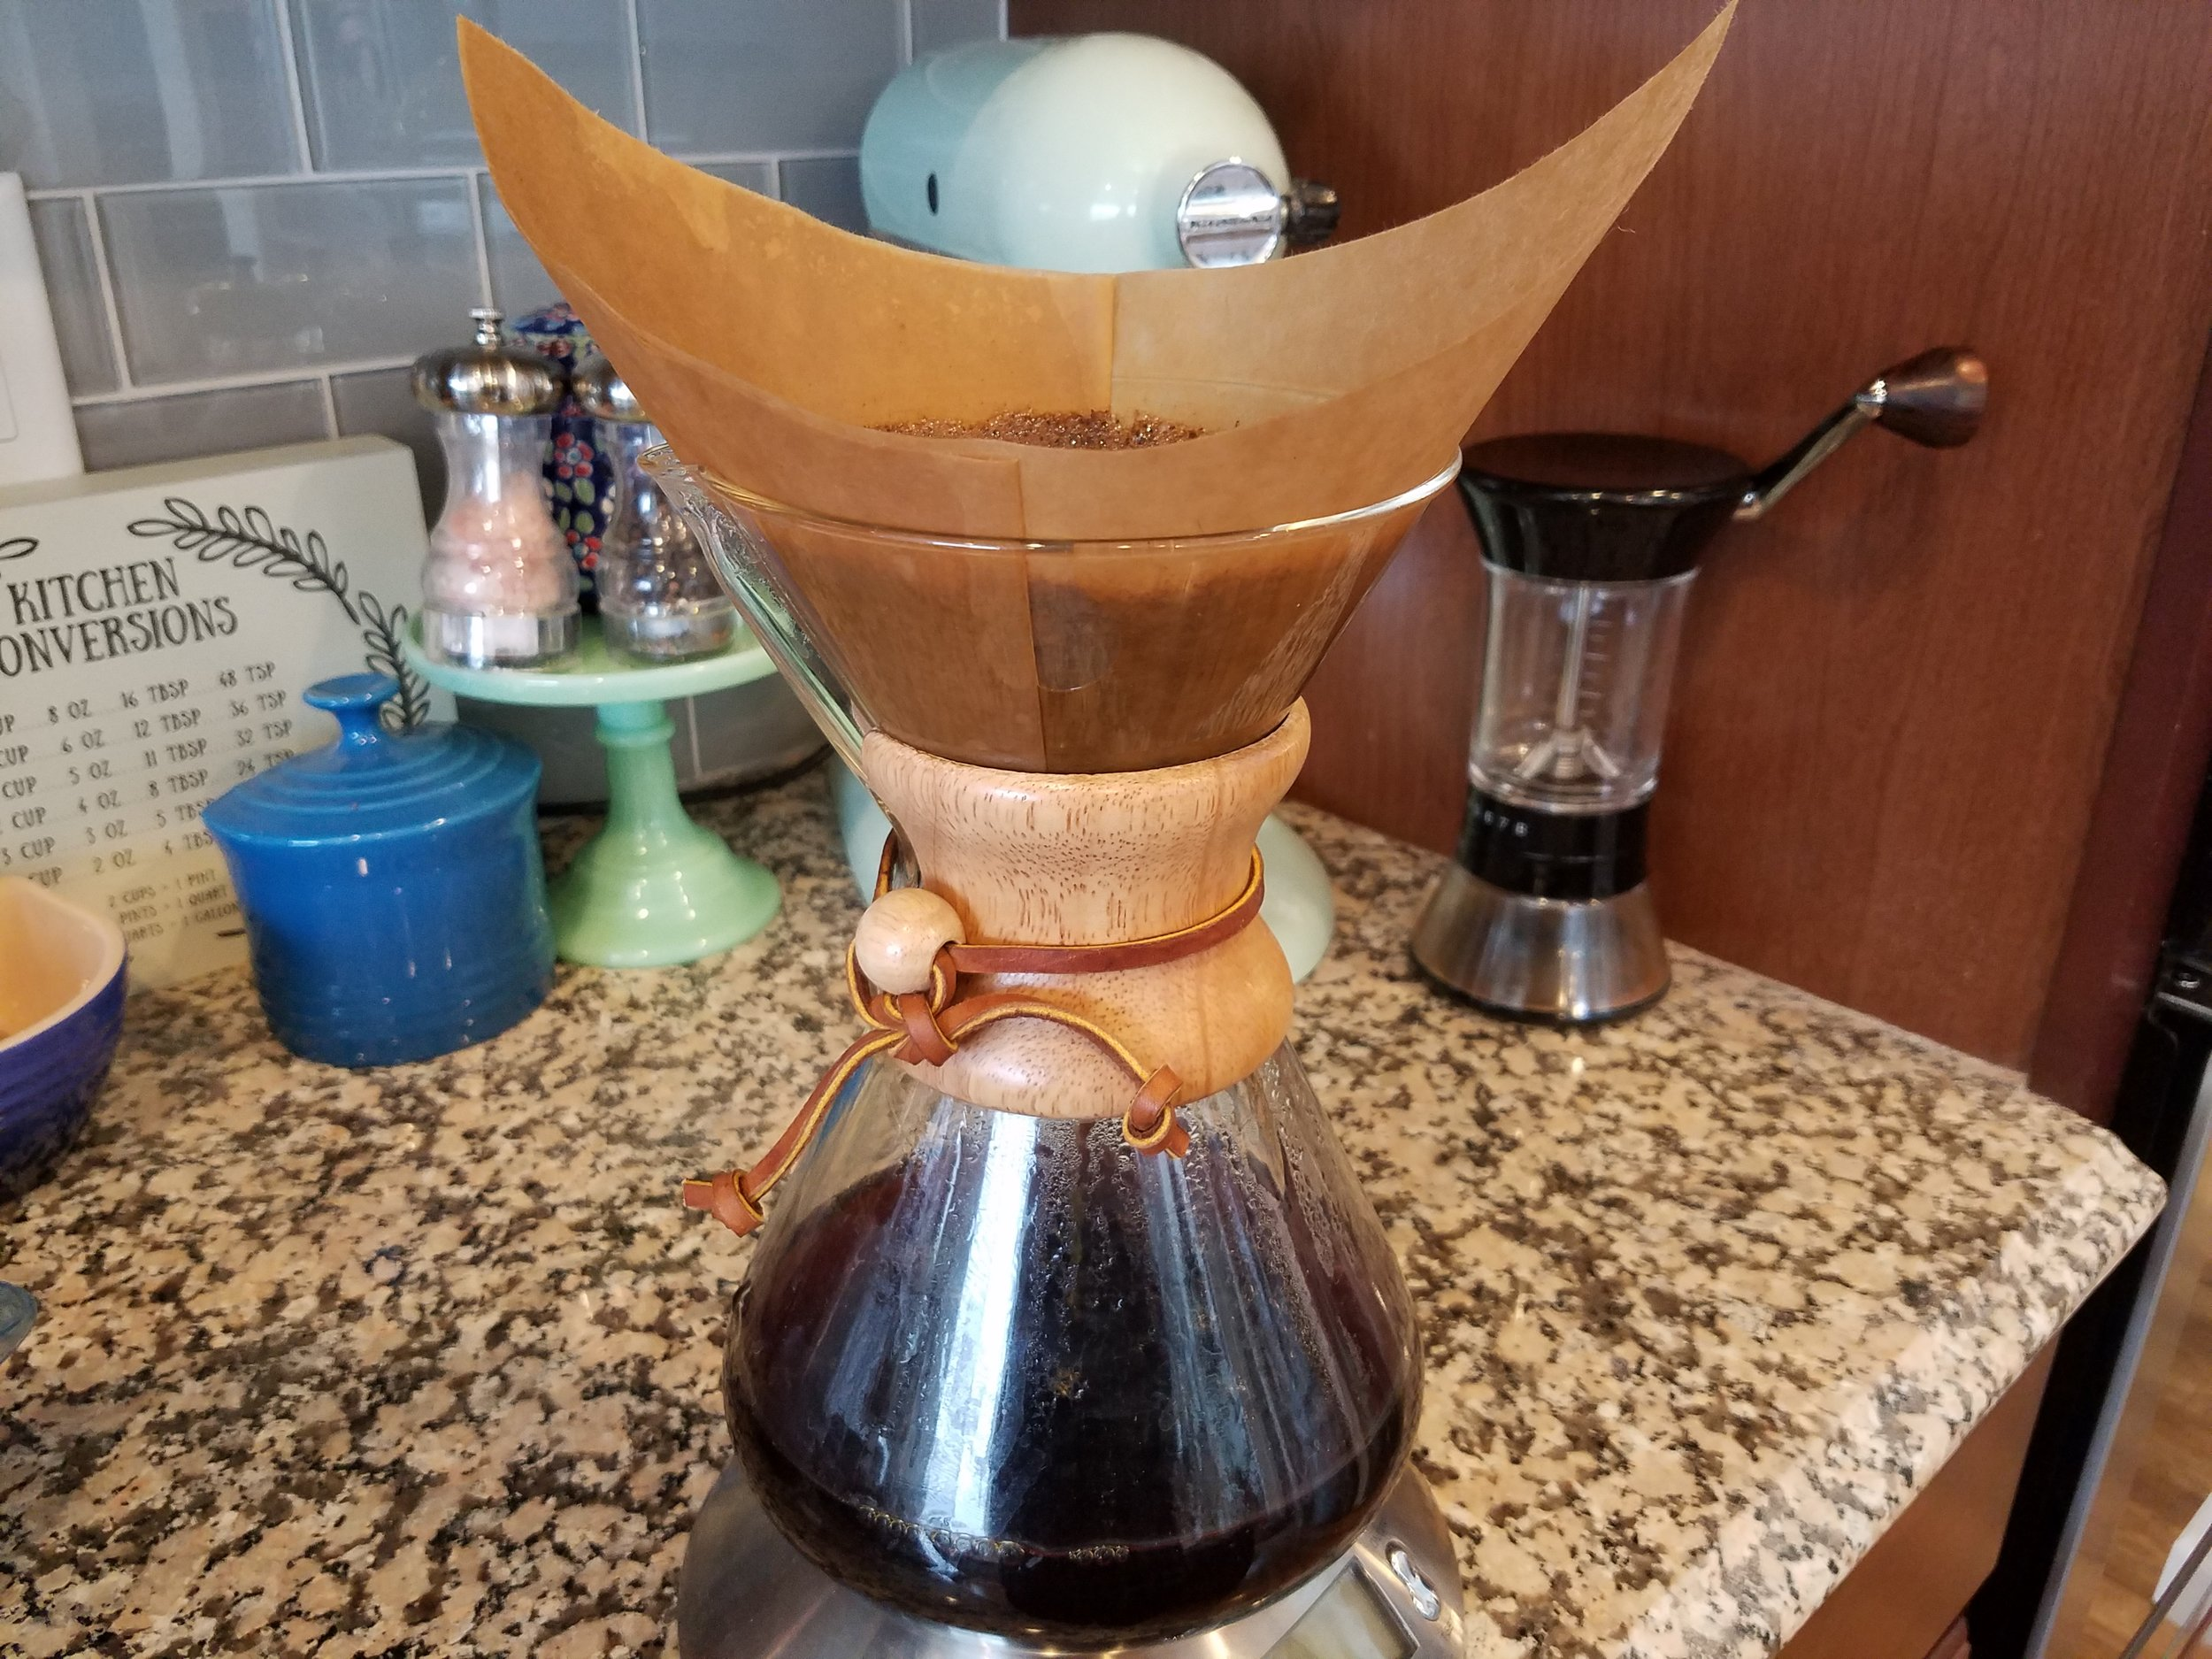 Afternoons home in our house call for coffee by Brandon's preferred brew method - the Chemex.